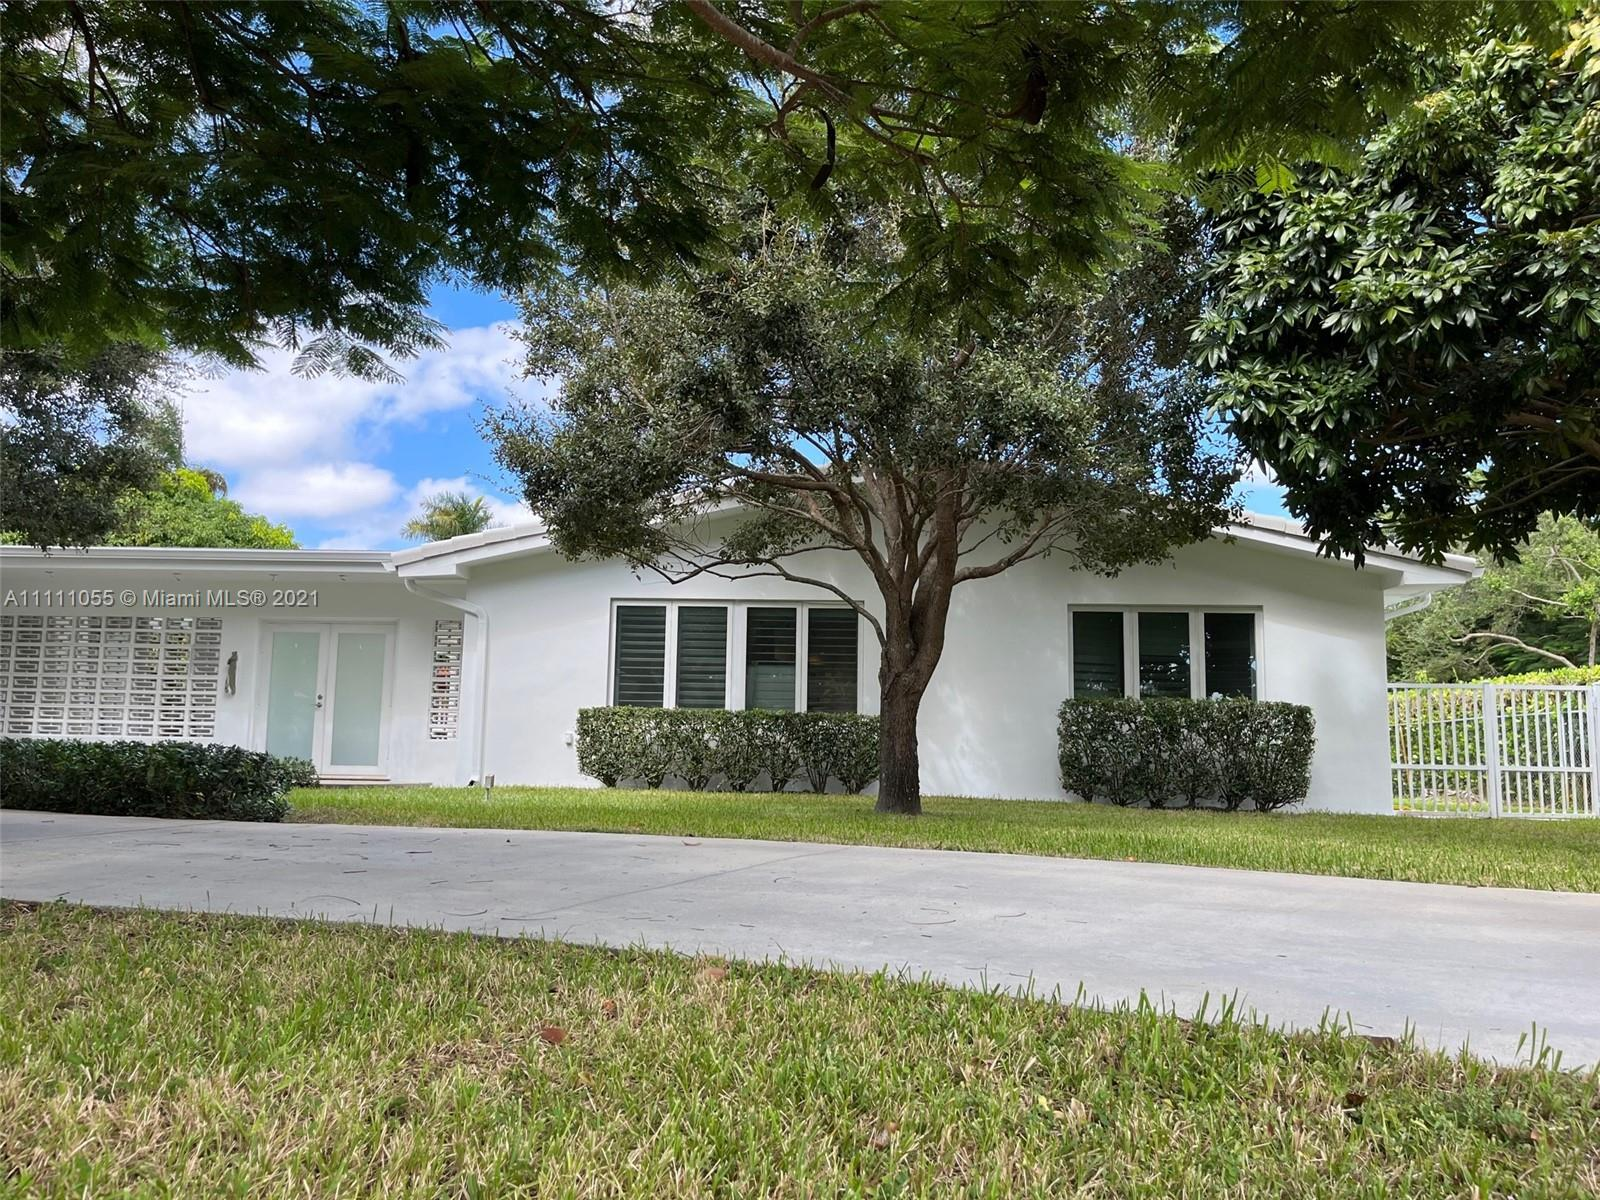 Single Family Home,For Rent,7921 SW 143rd St, Palmetto Bay, Florida 33158,Brickell,realty,broker,condos near me